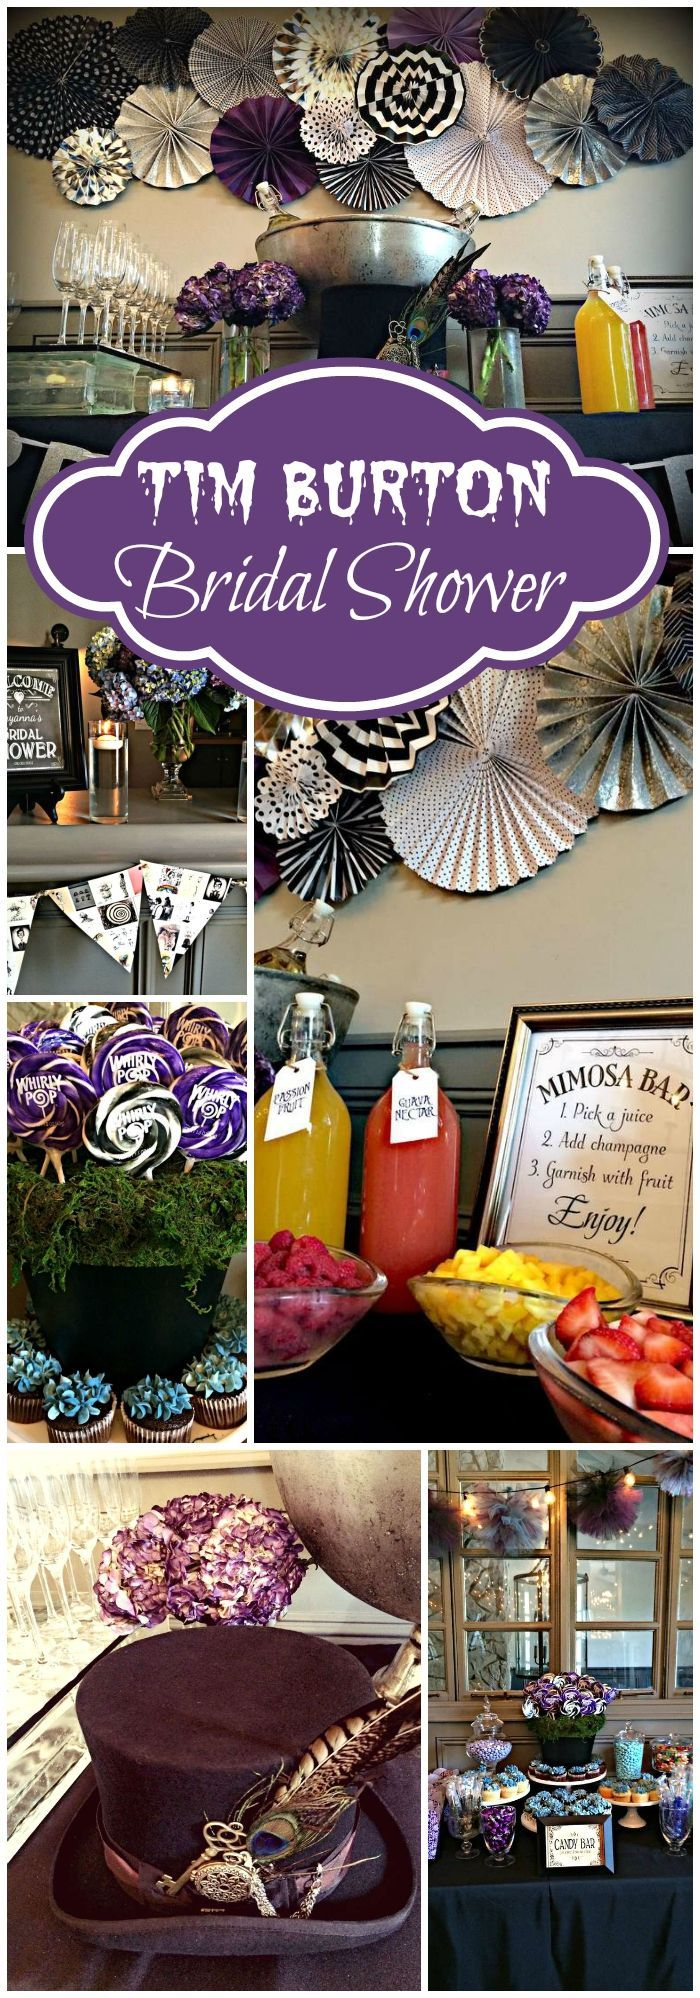 Best 20+ Halloween bridal showers ideas on Pinterest | Bridal ...